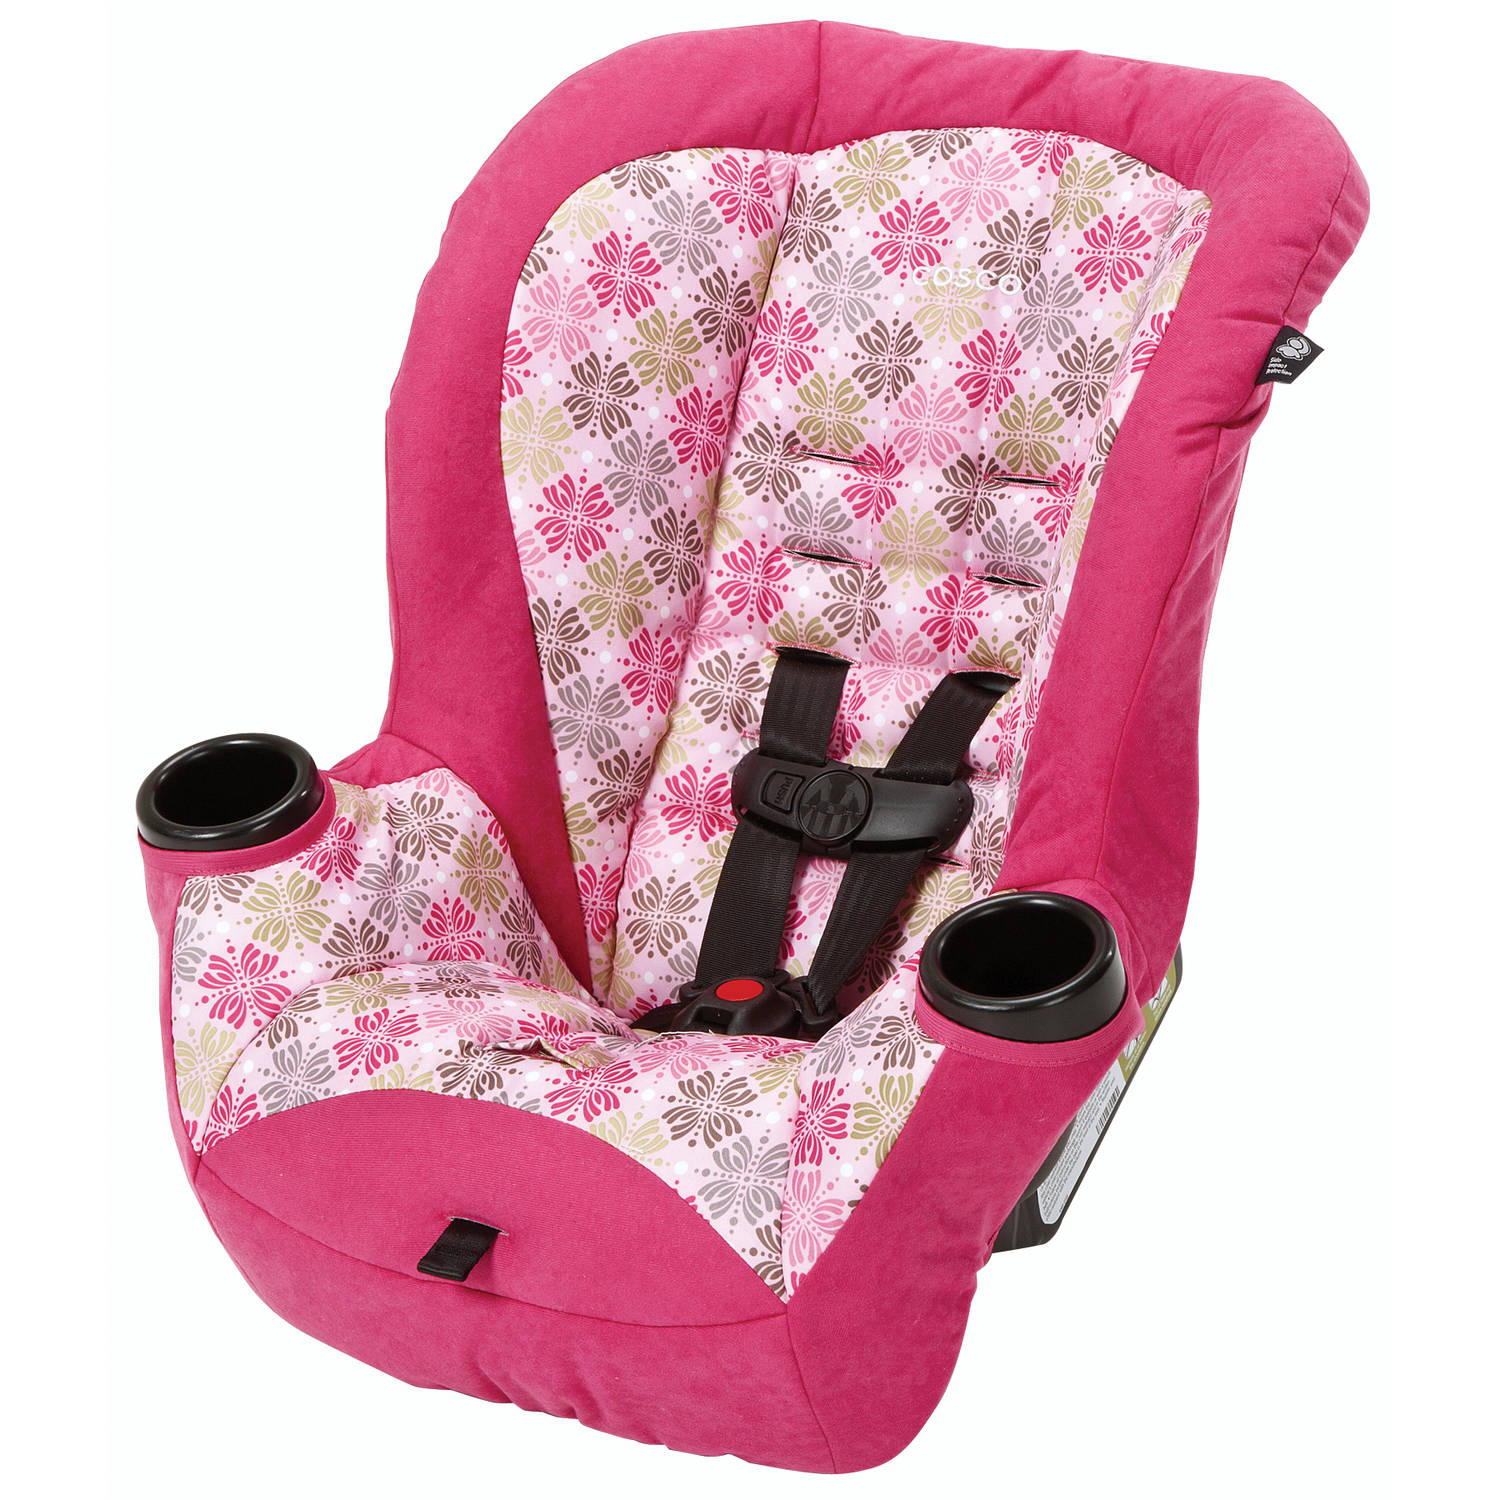 Cosco Juvenile APT 40RF Convertible Car Seat, Megan